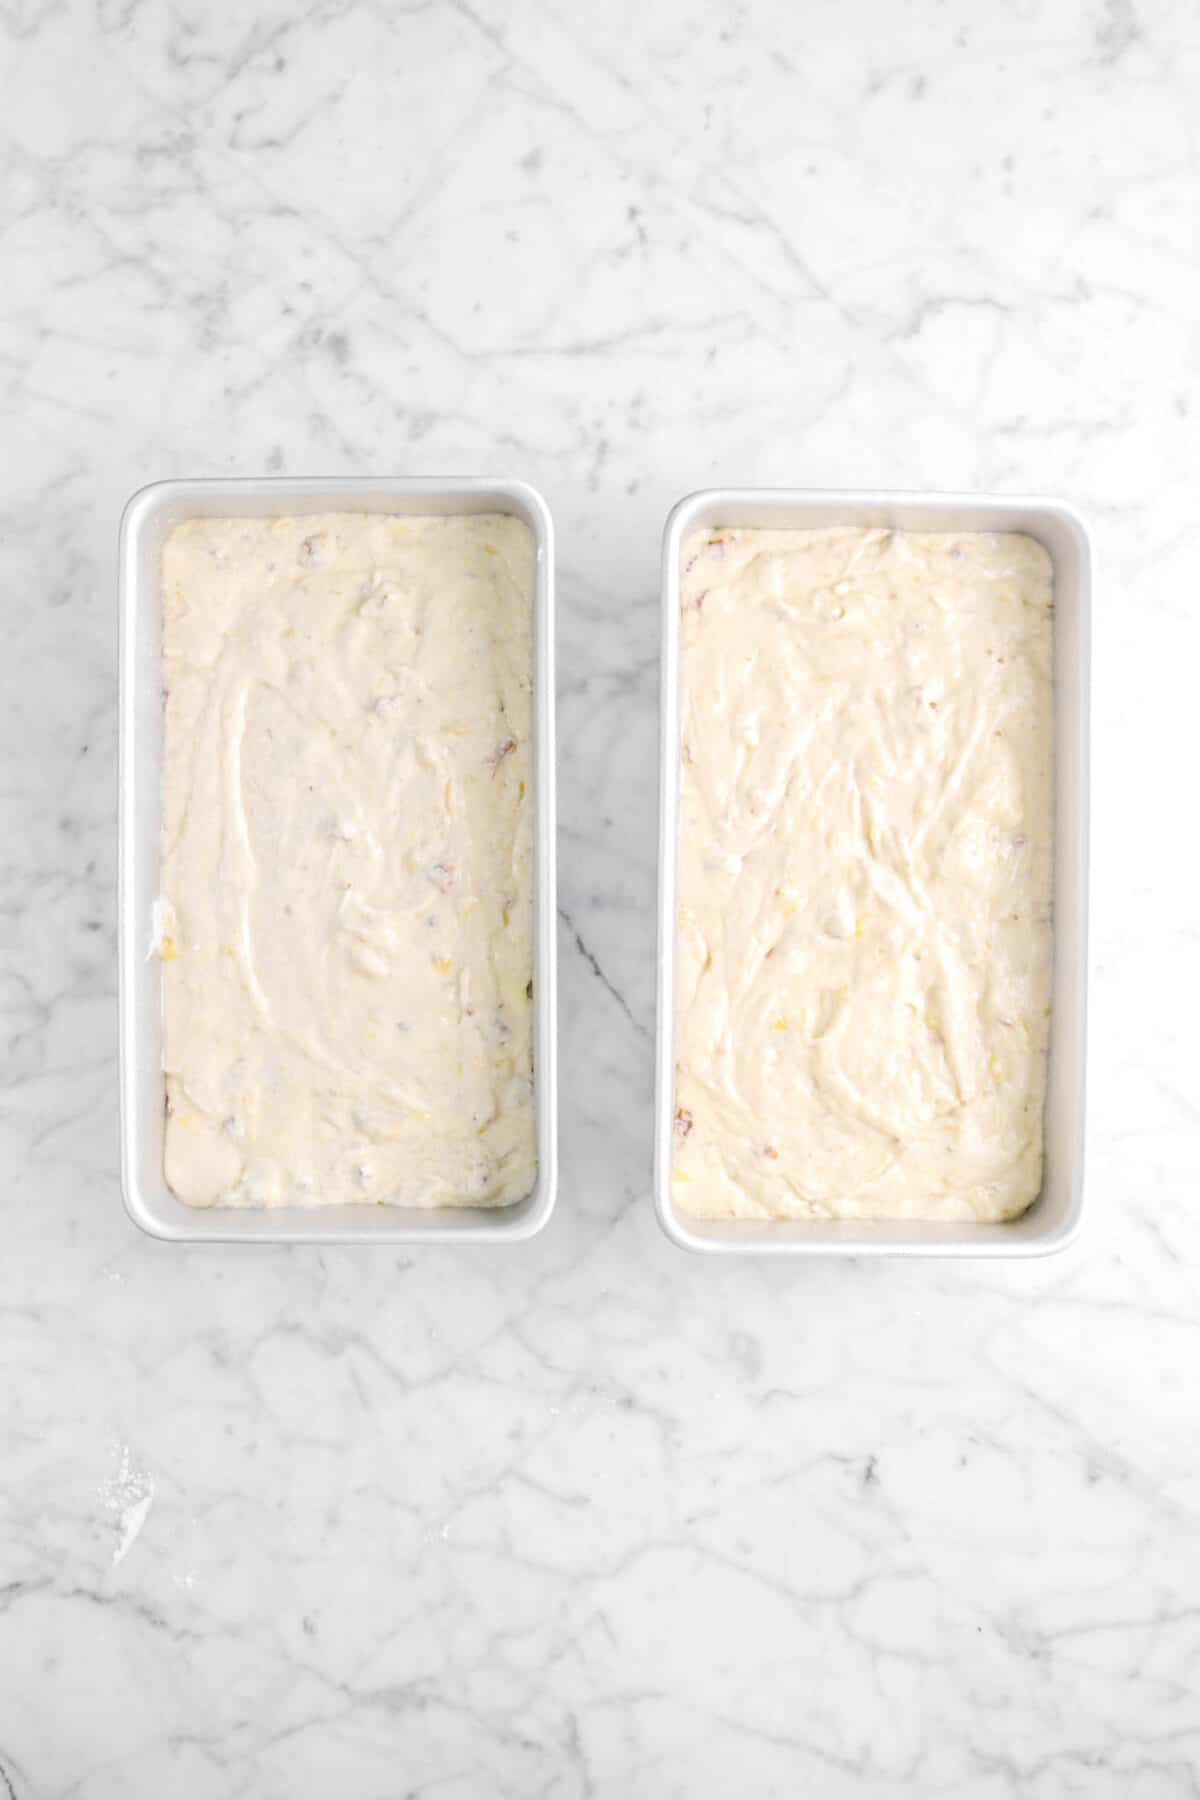 banana bread batter in two loaf pans on marble counter